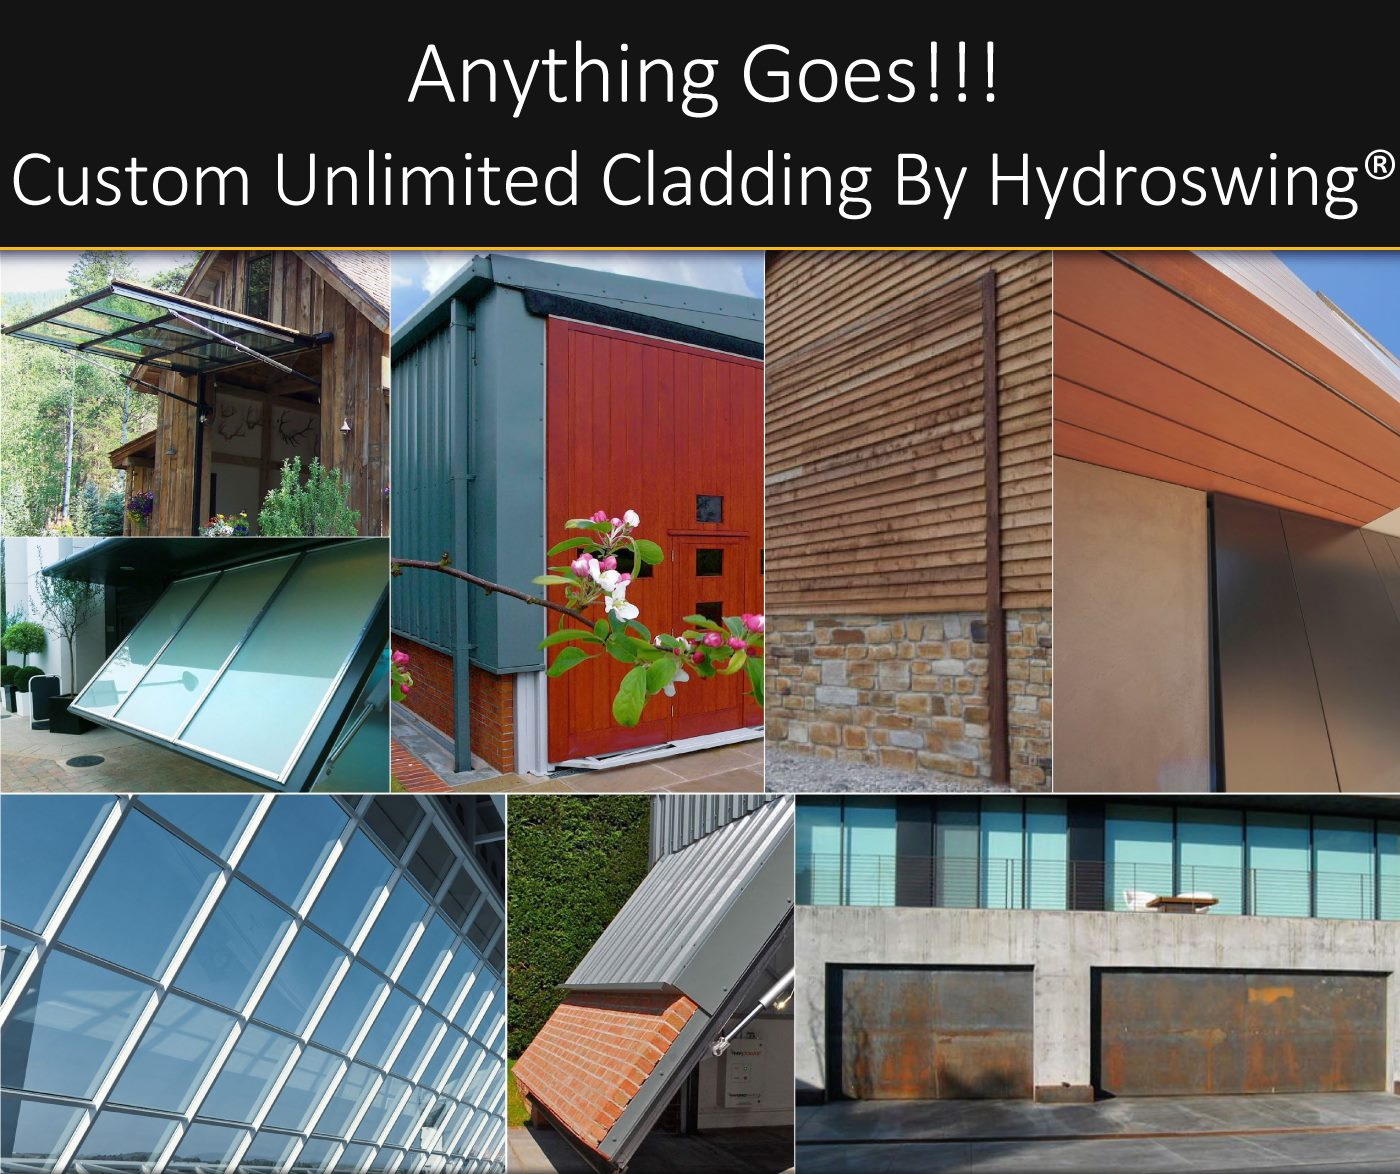 custom unlimited cladding options offered by hydroswing